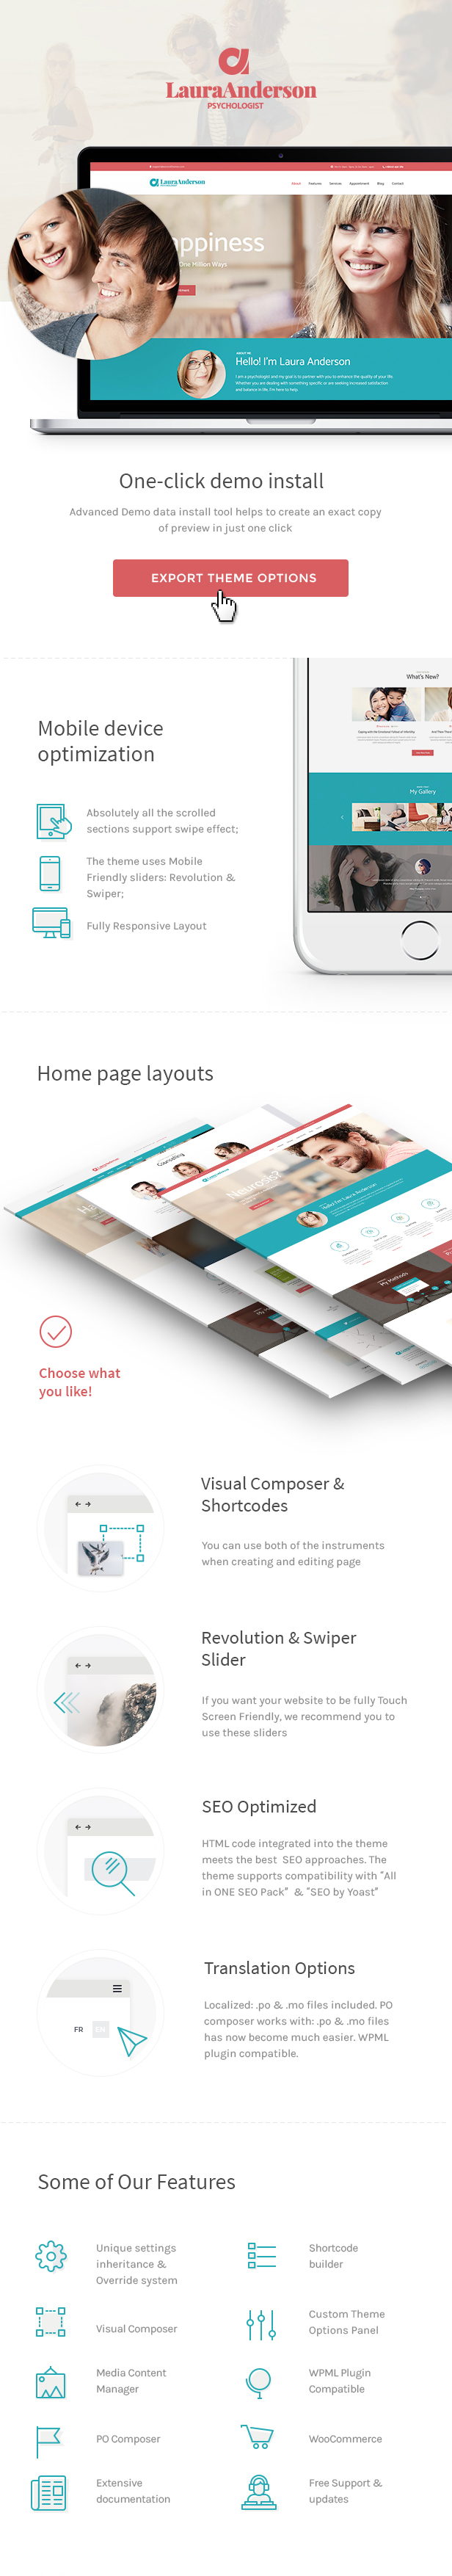 Latest Photo of  Psychologist | Therapy and Counseling Doctor WordPress Theme